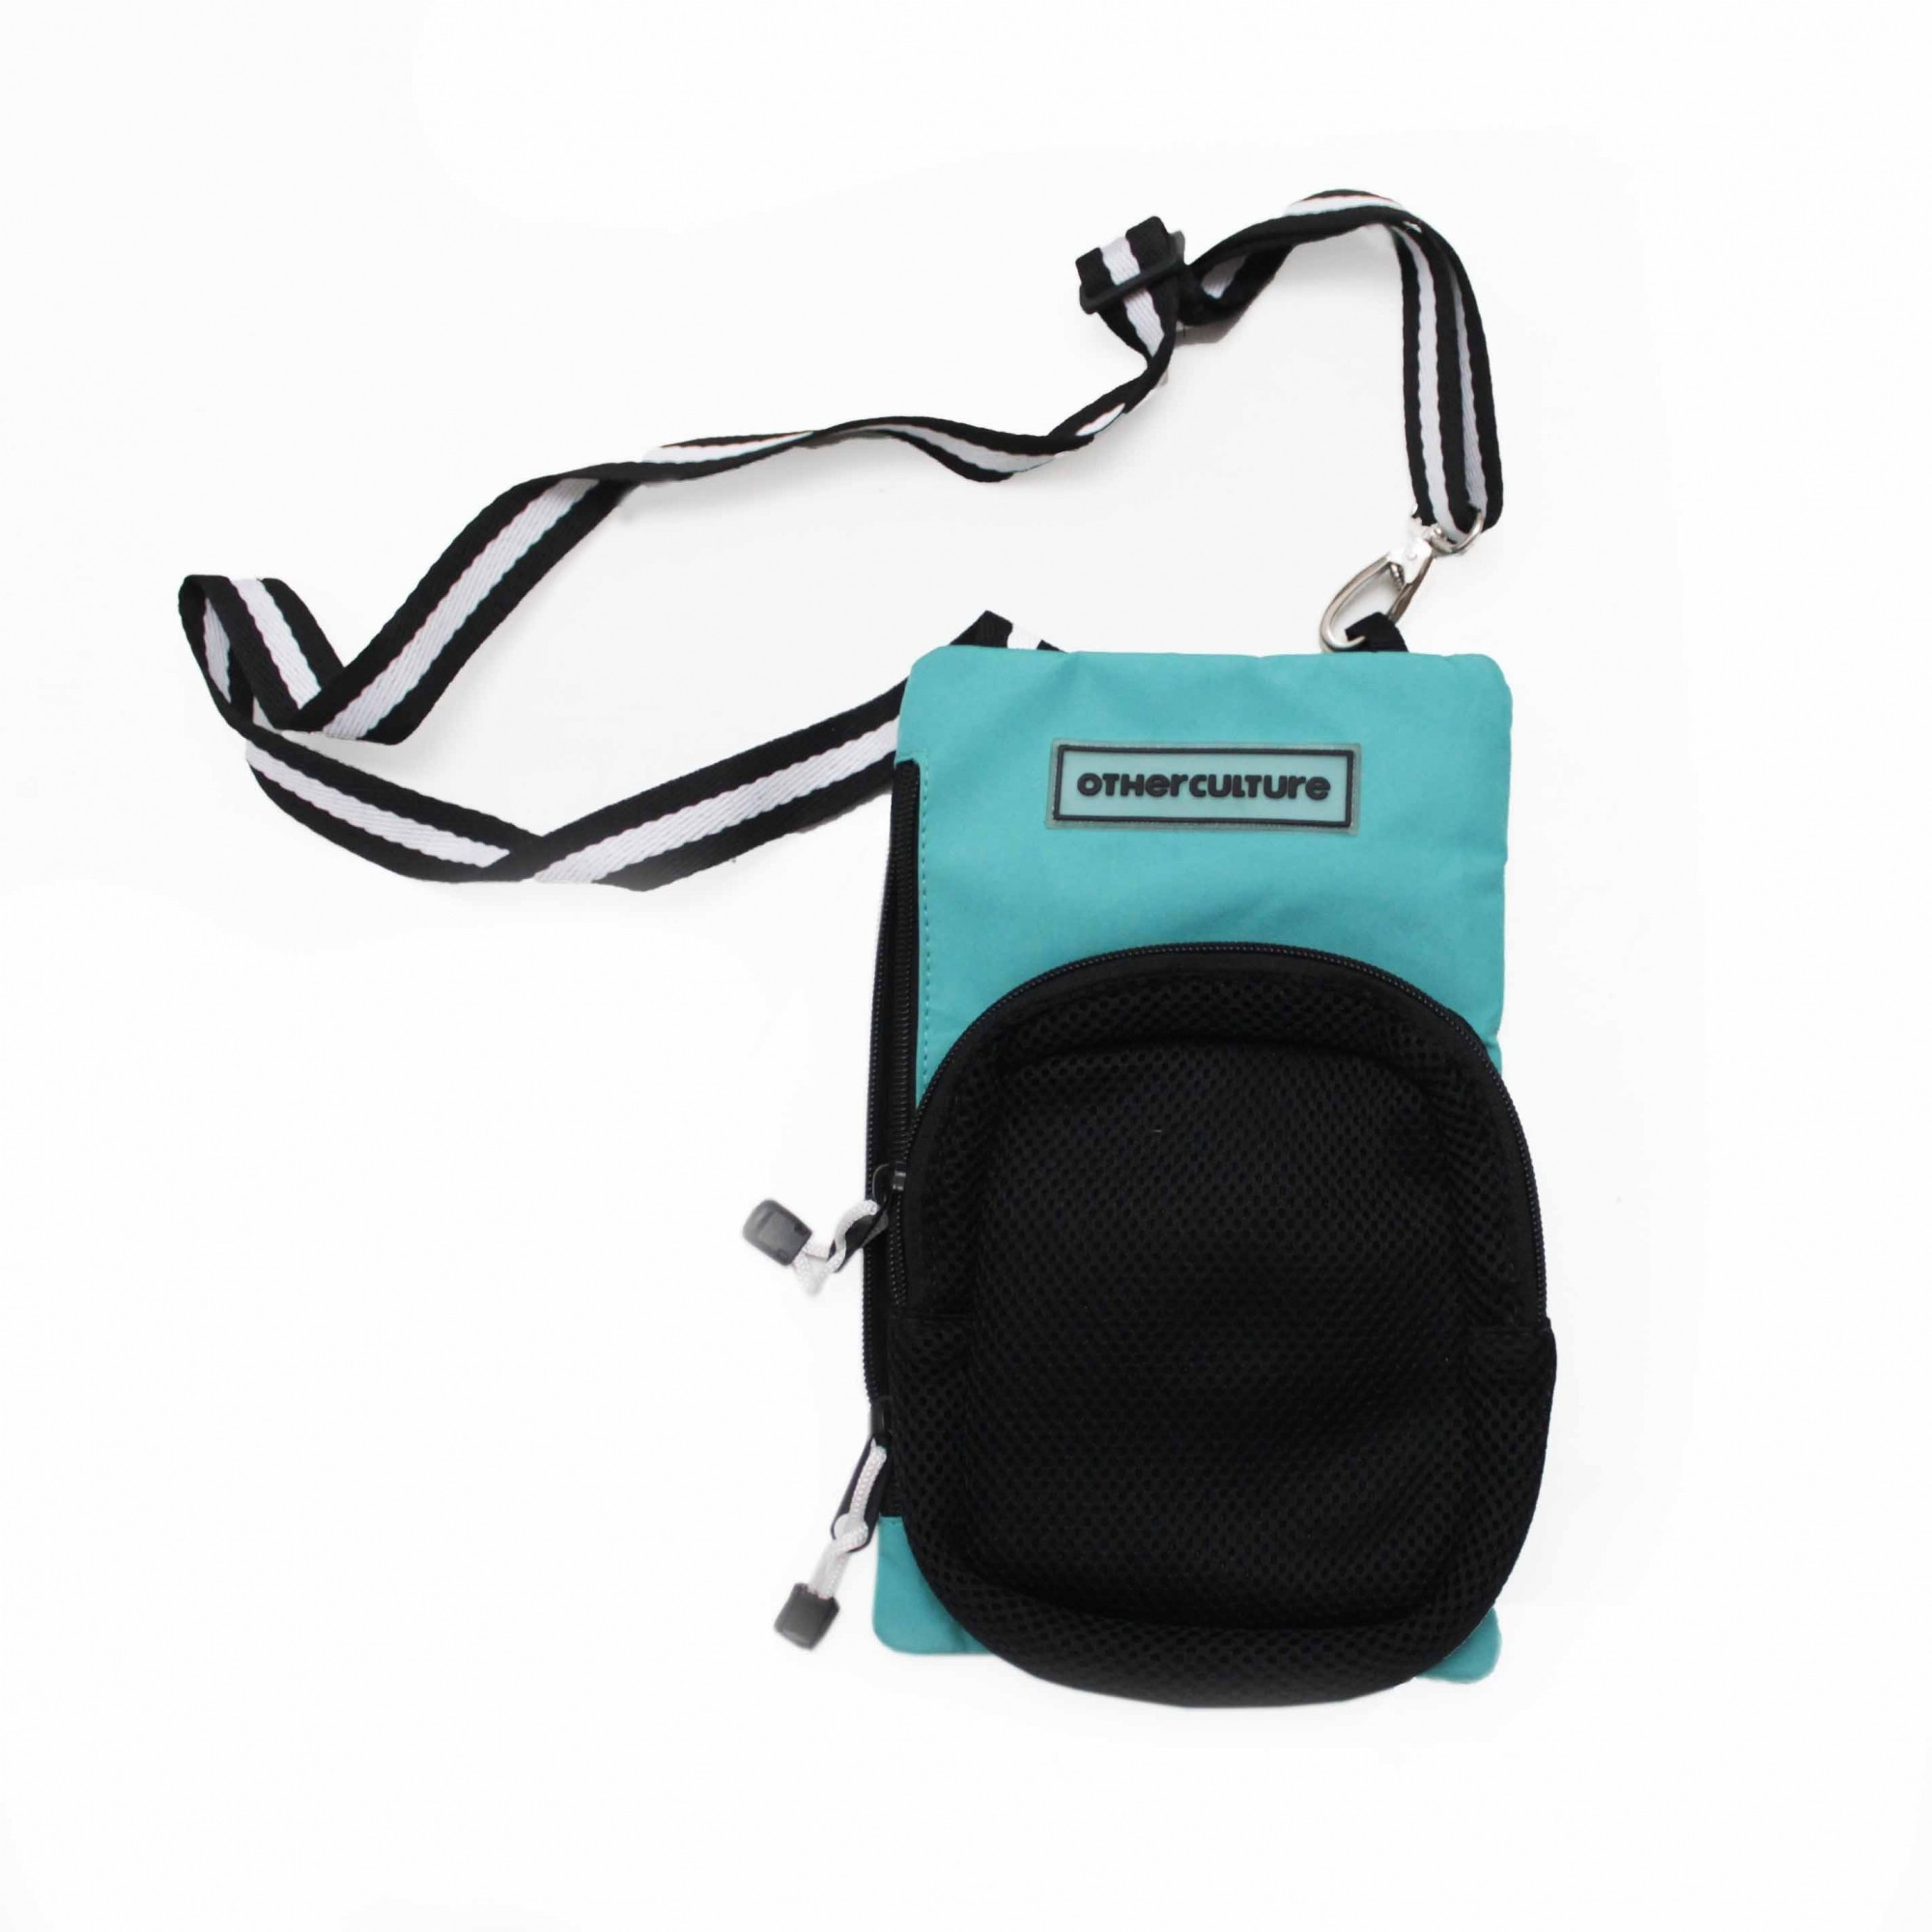 Shoulder Bag Other Culture Sport Tiffany - Azul